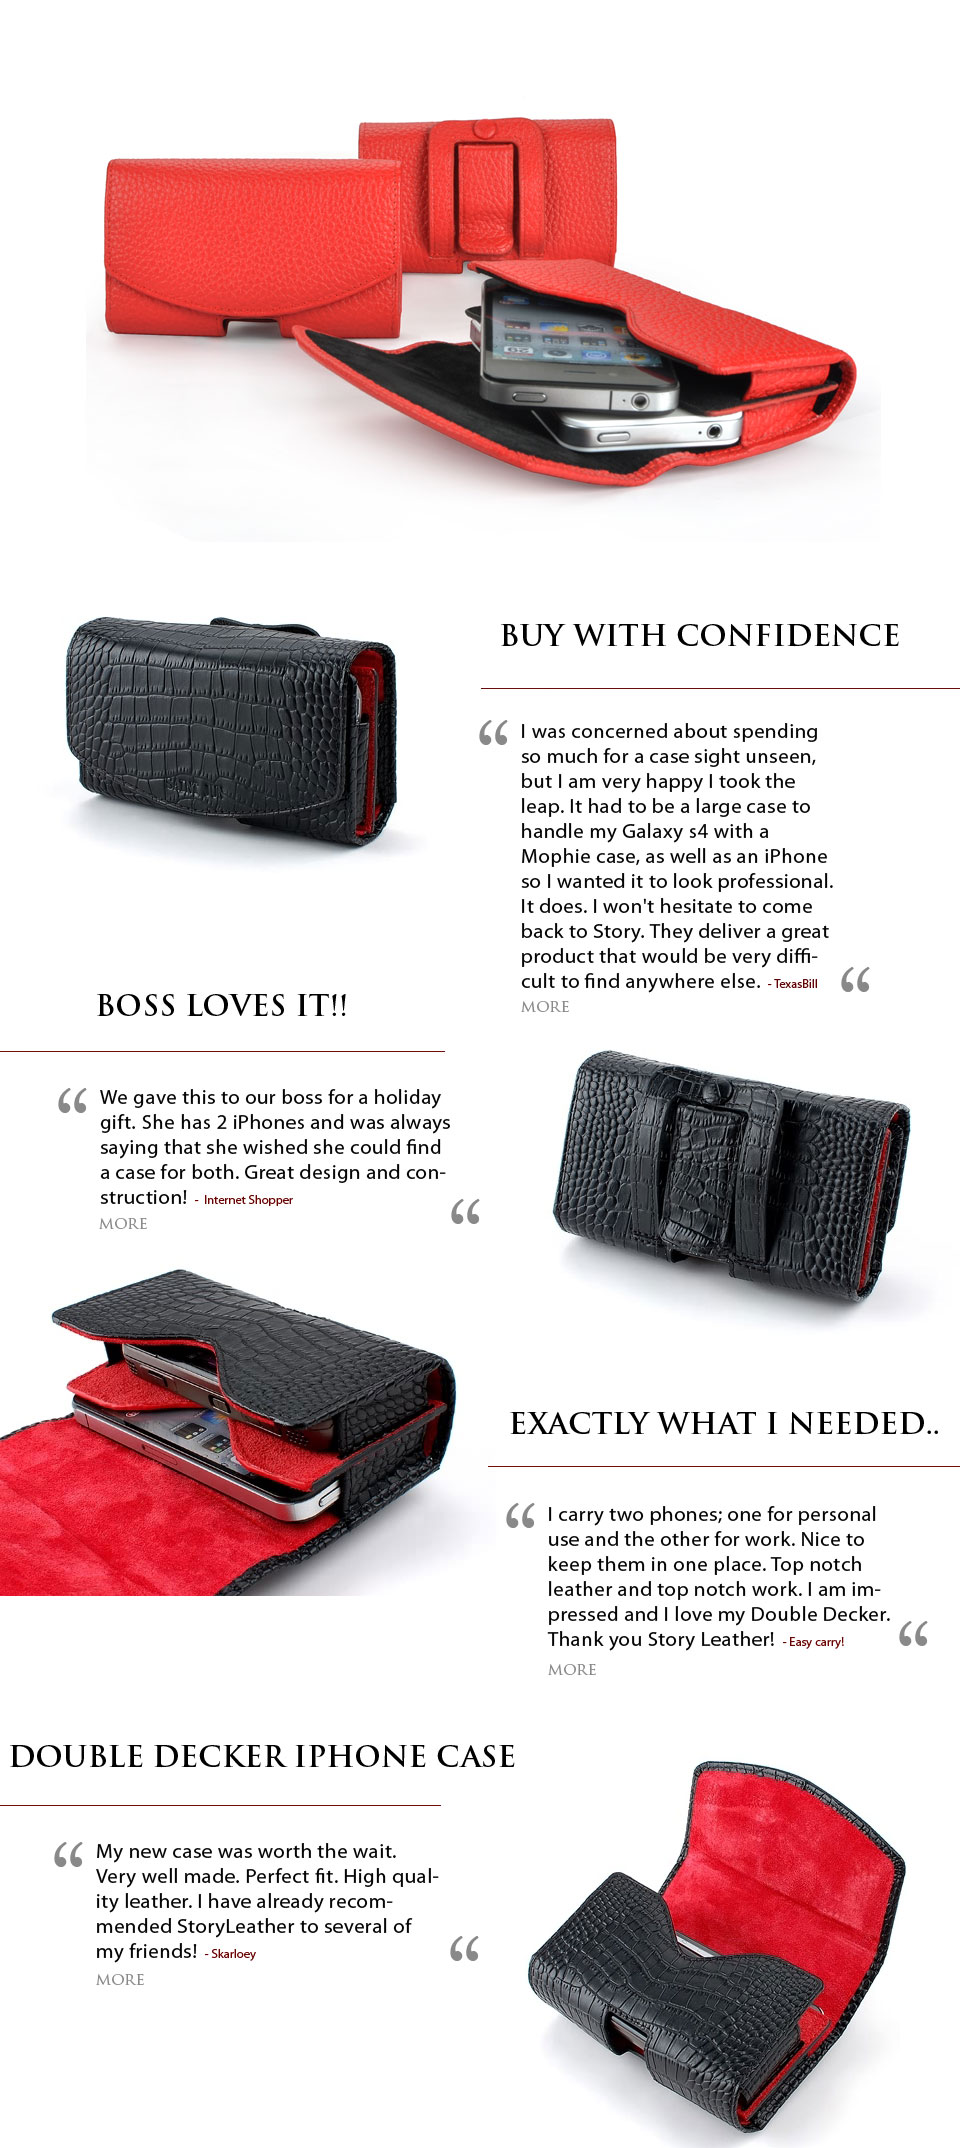 Double Decker leather holster belt clip case for carrying 2 smartphones